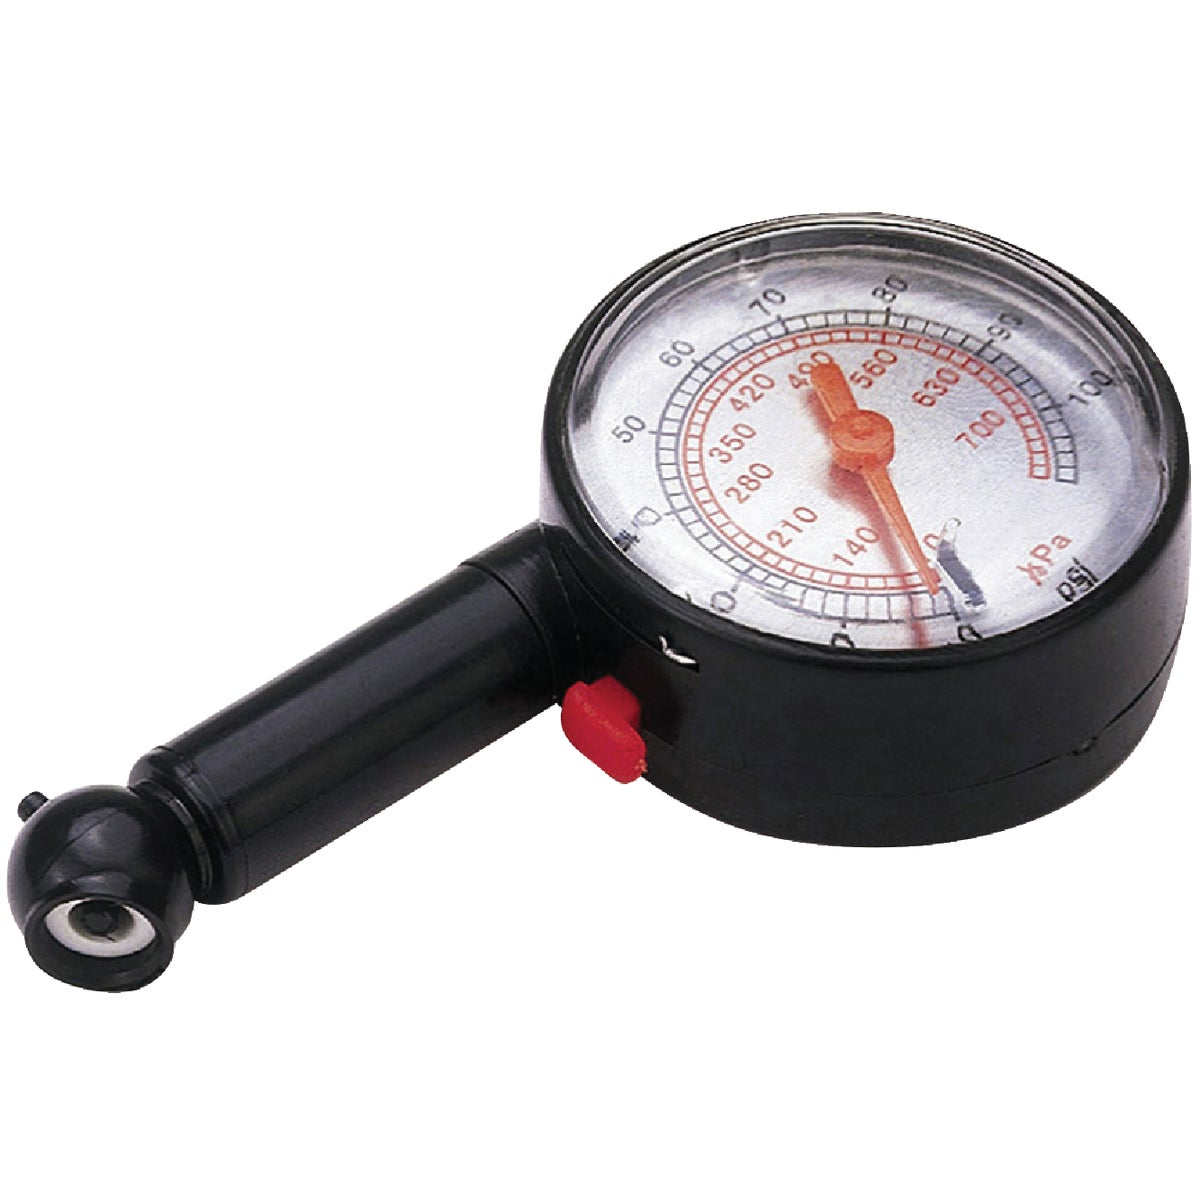 60PSI DIAL TIRE GAUGE - 75558 by Custom Accessories